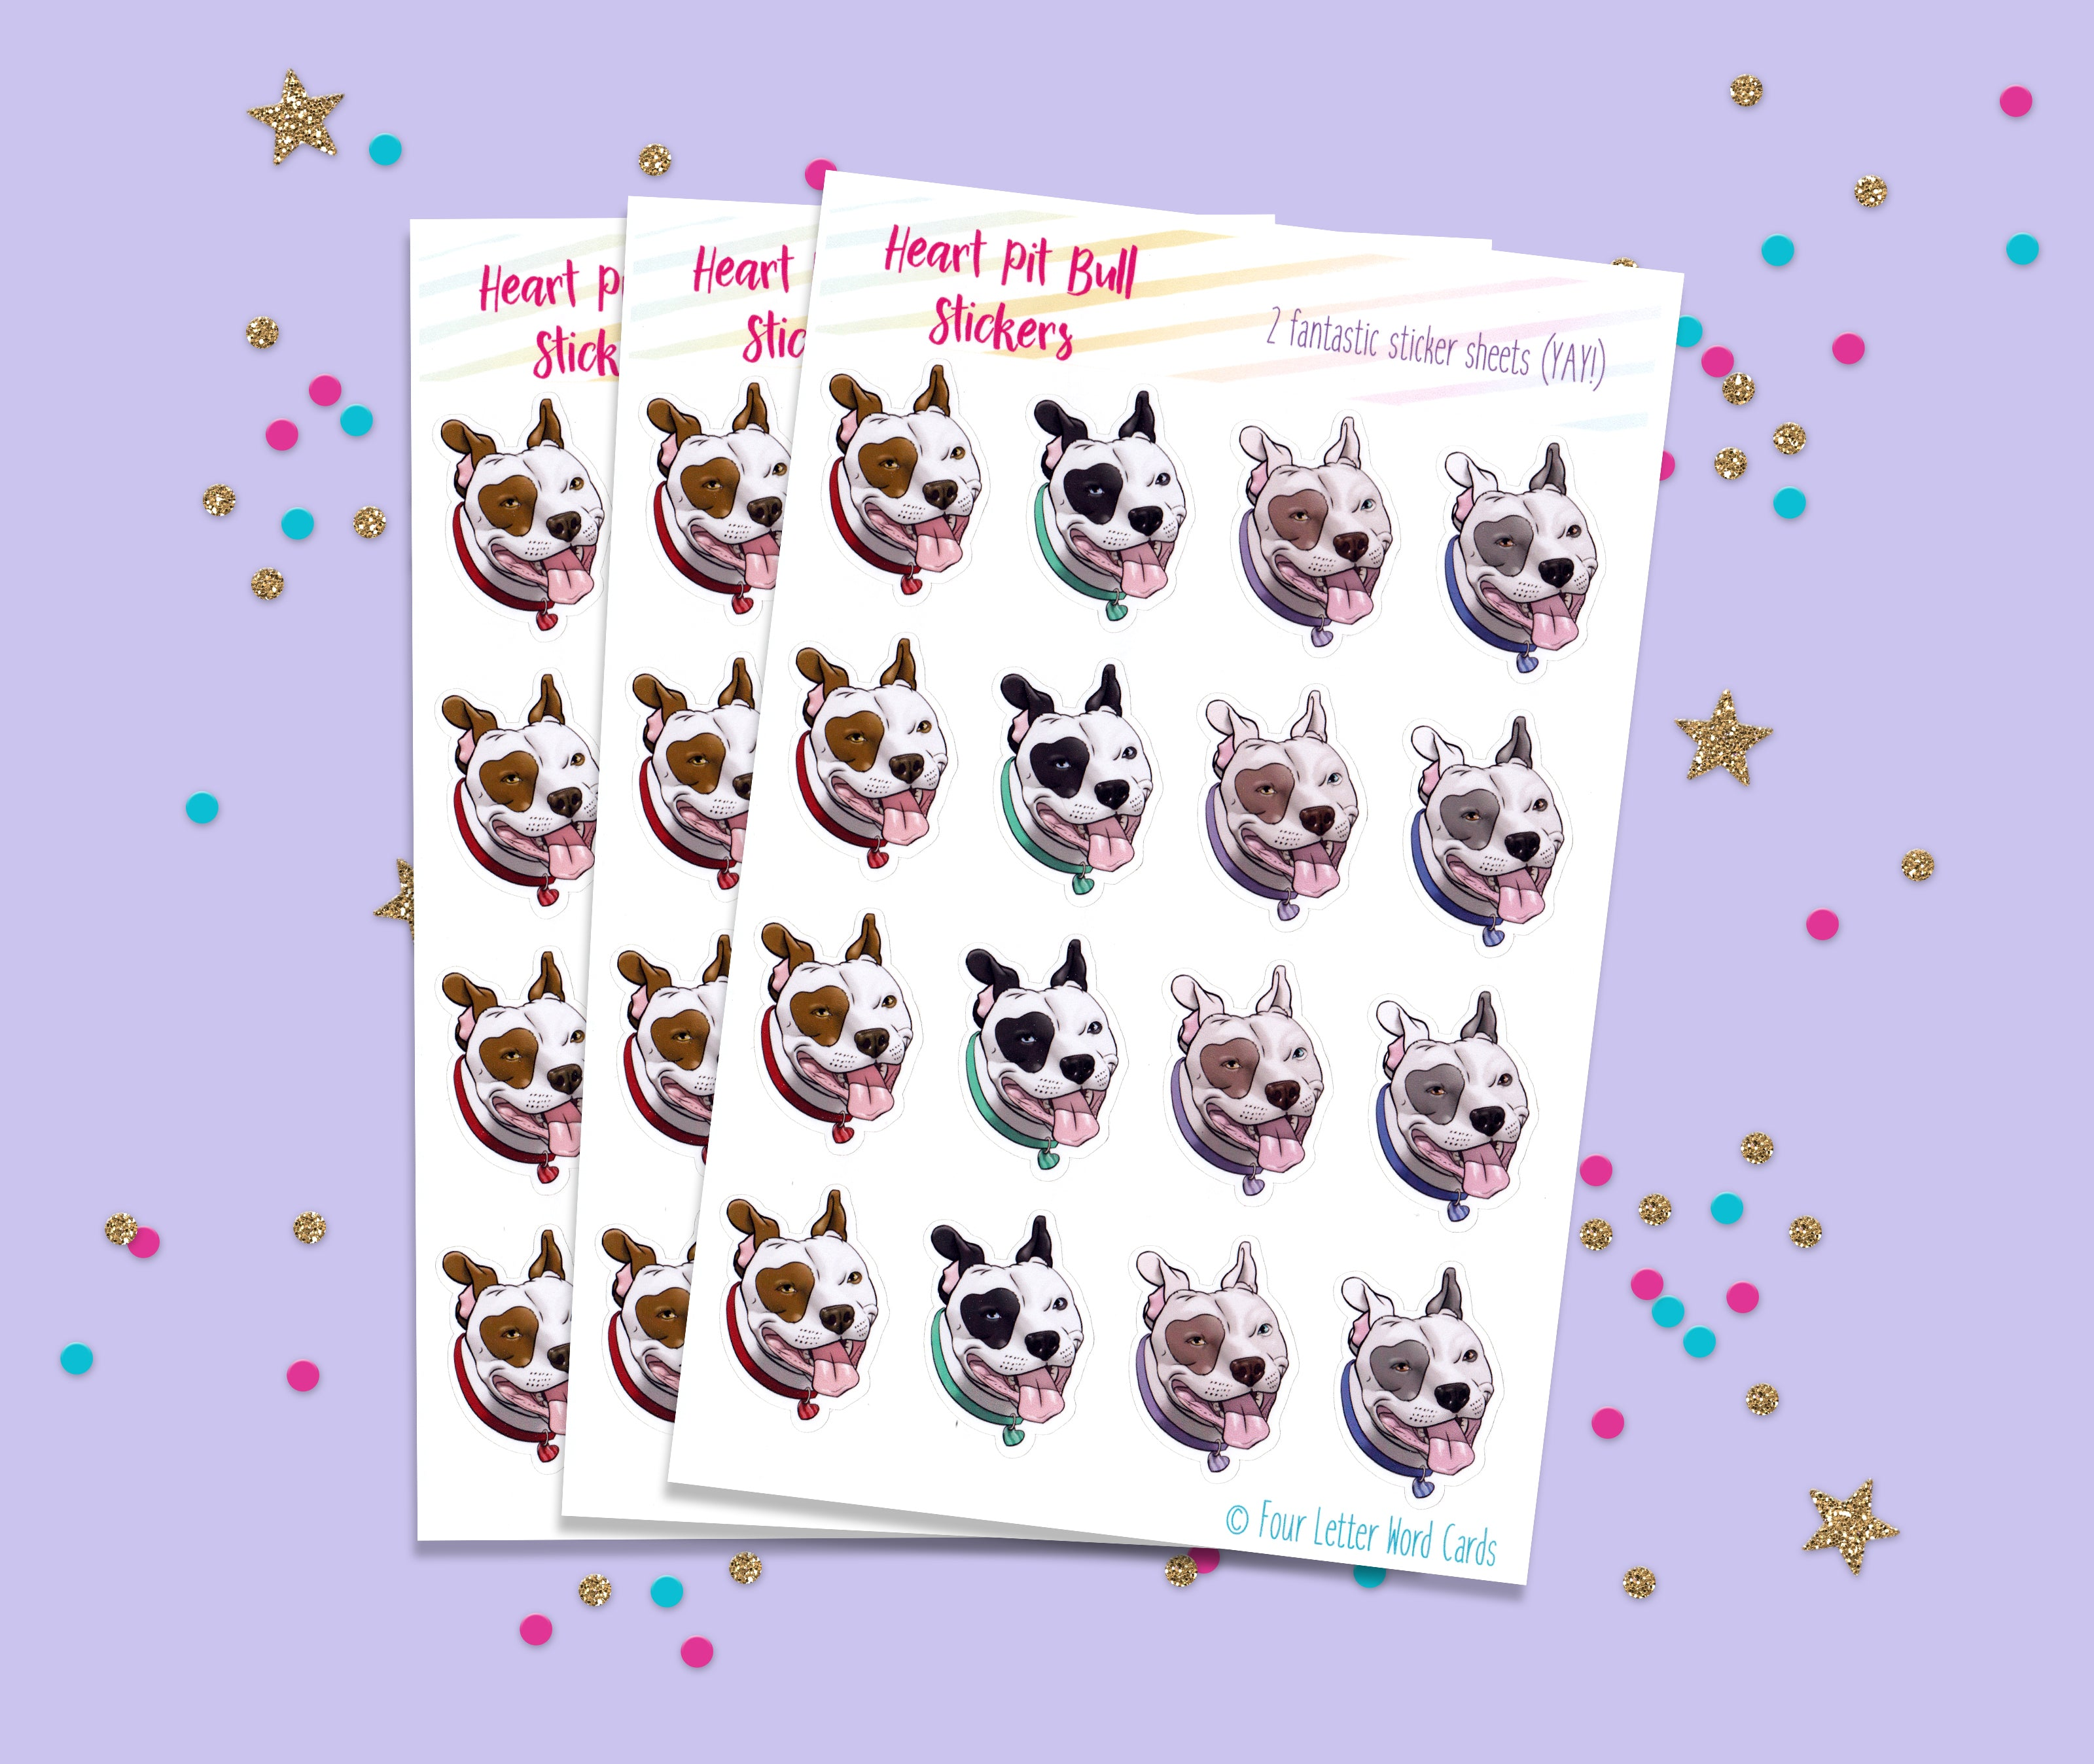 Heart Pit Bull Stickers